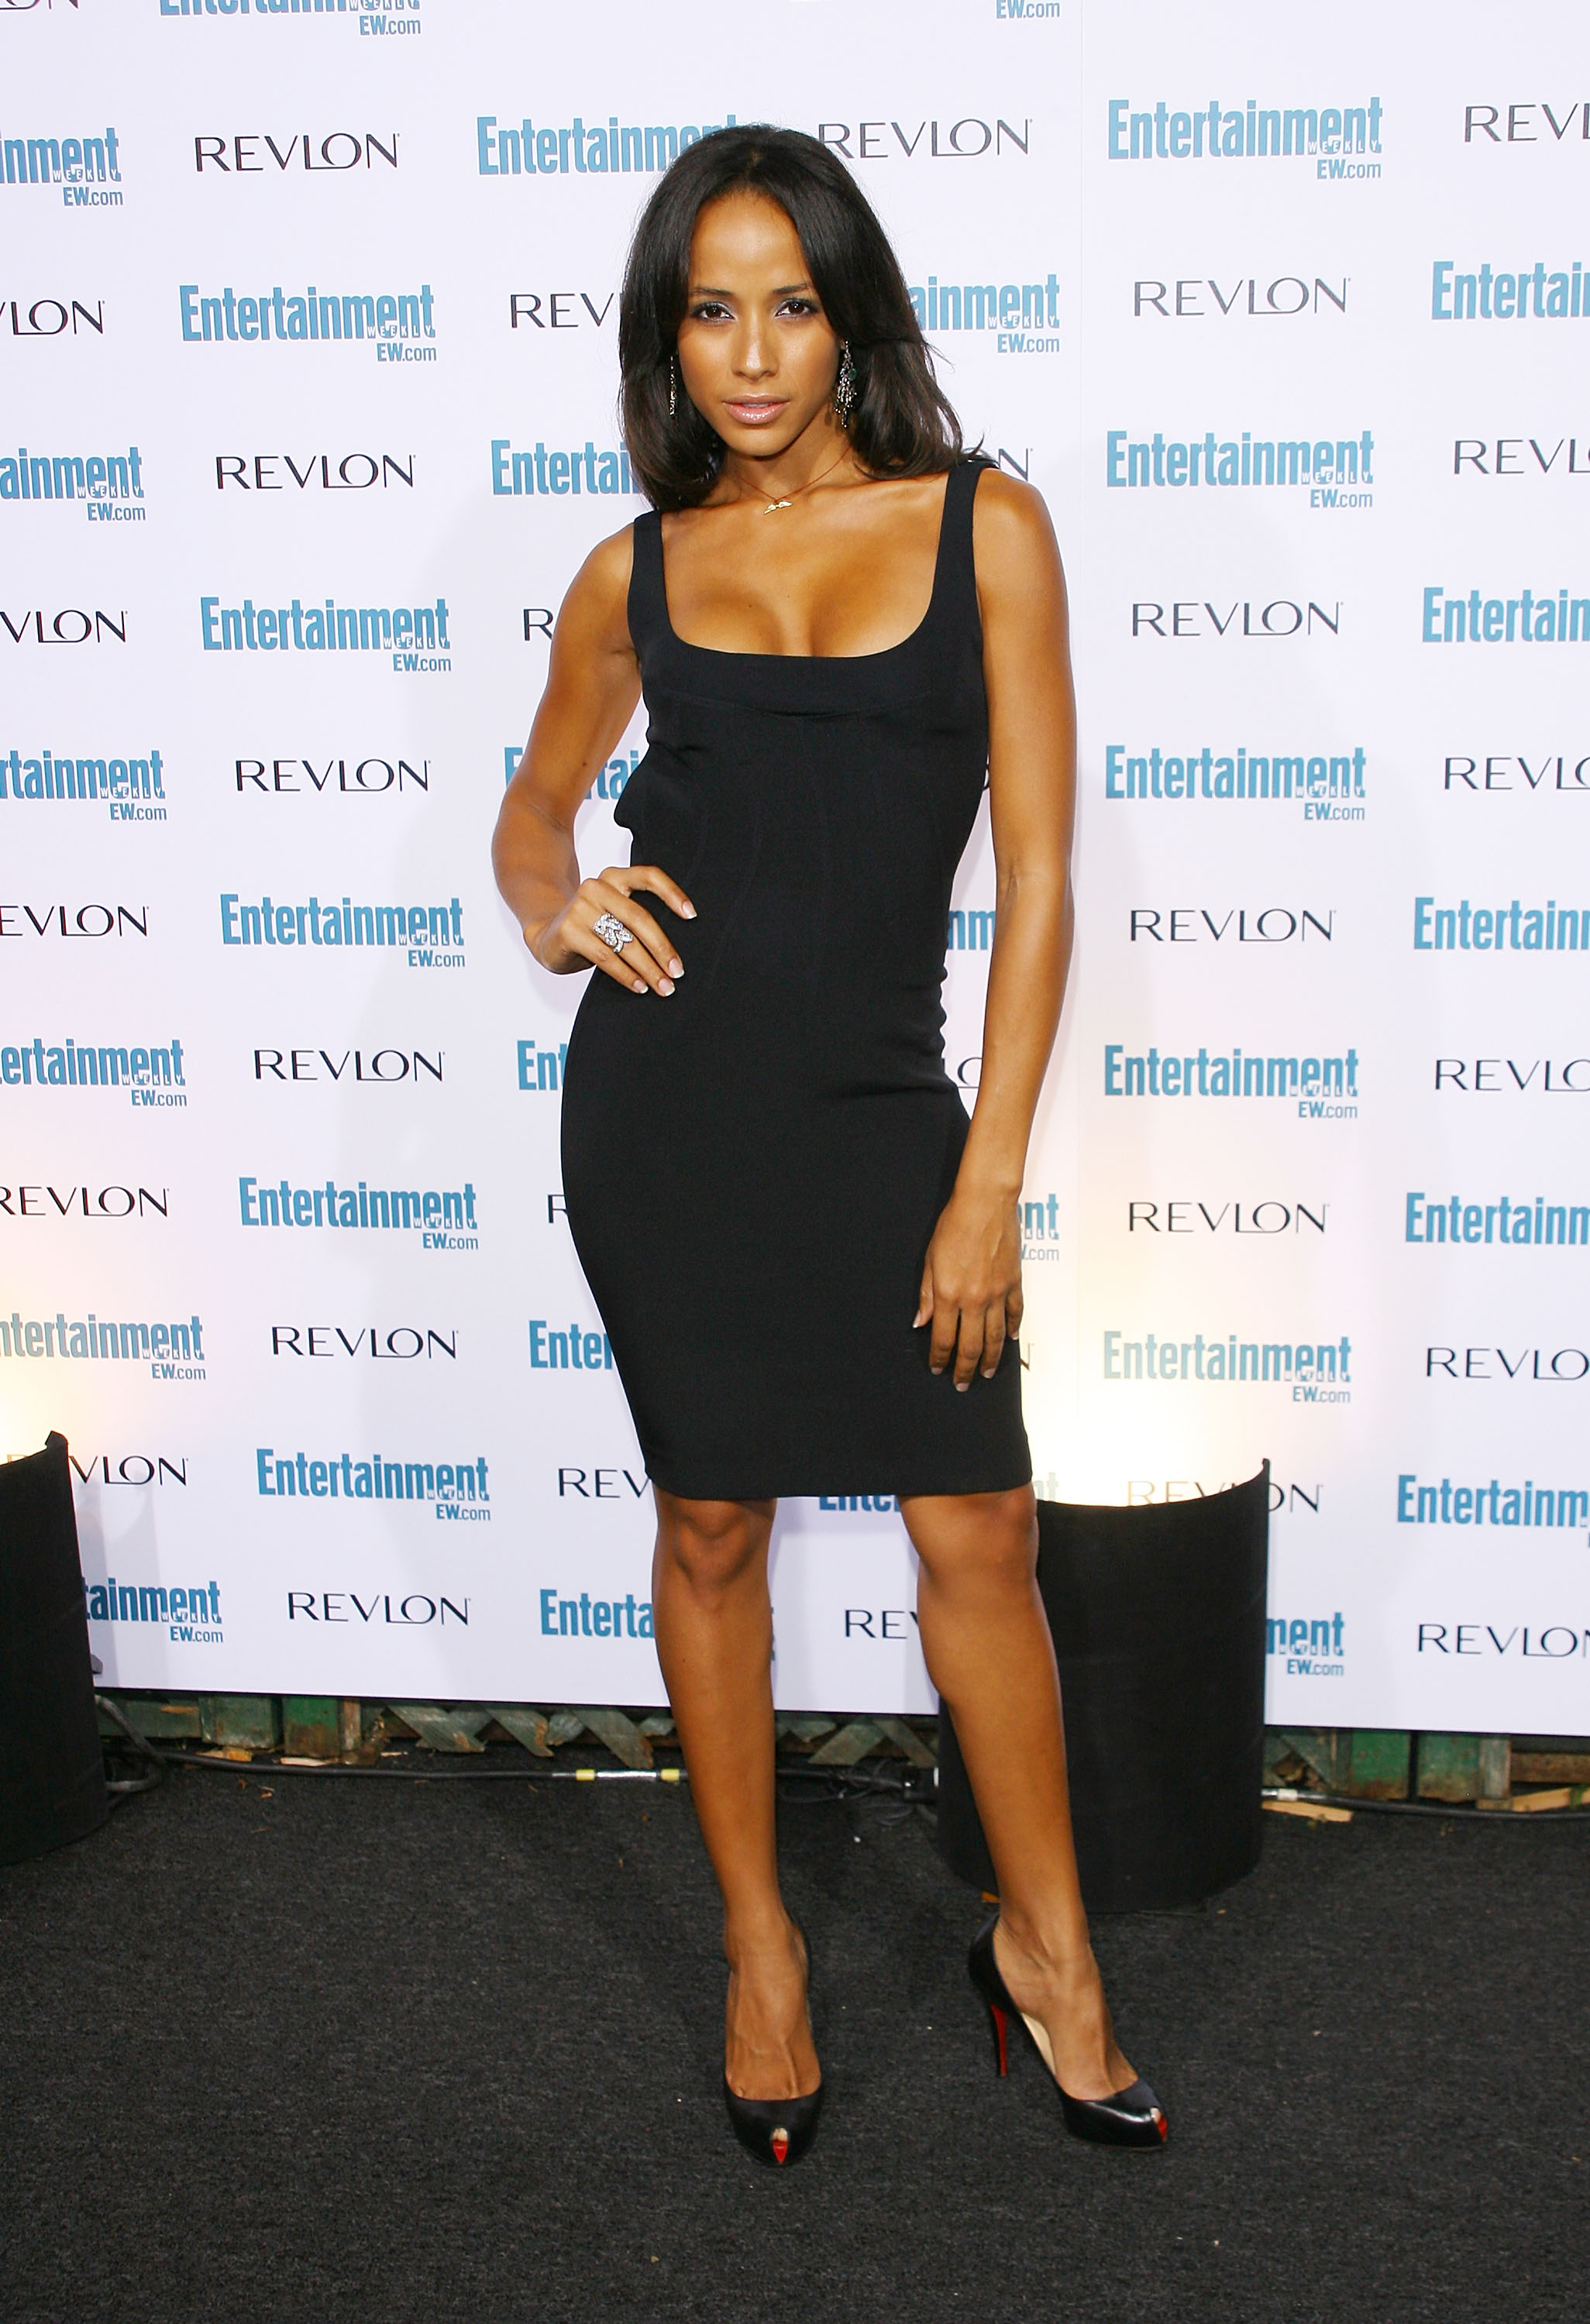 98443_Celebutopia-Dania_Ramirez-Entertainment_Weekly4s_Sixth_Annual_Pre-Emmy_Celebration_party-01_122_667lo.jpg